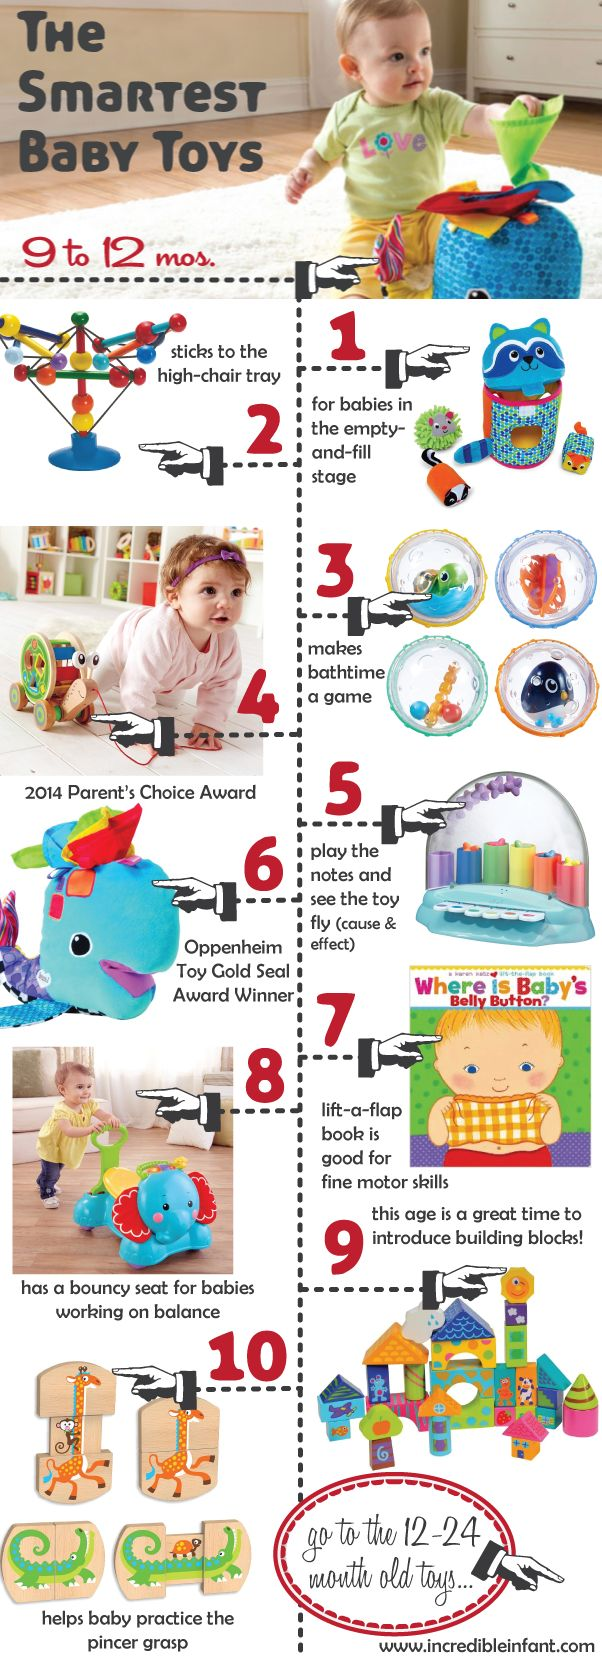 The+Smartest+Baby+Toys+for+Ages+9-12+Months+http://www.incredibleinfant.com